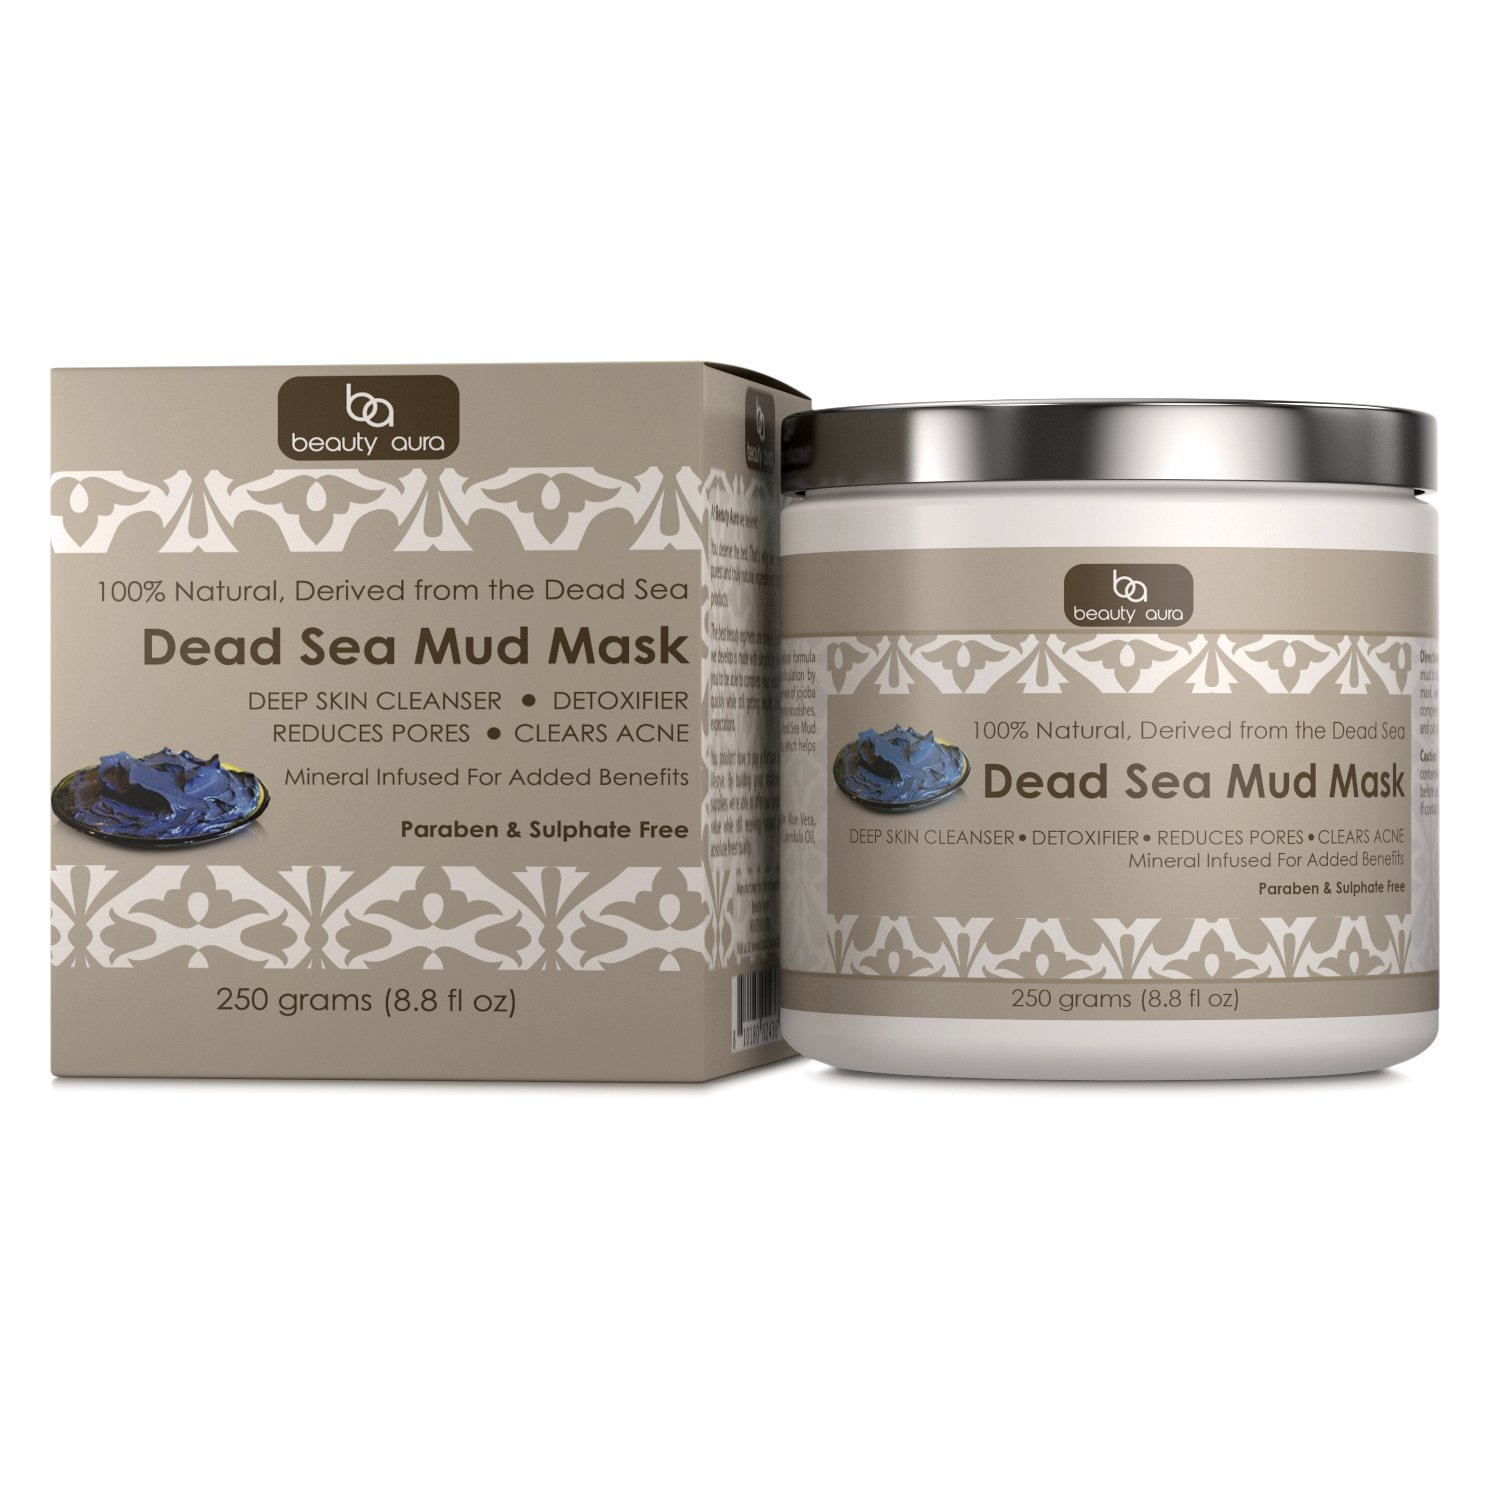 Beauty Aura Dead Sea Mud Mask, 250 grams (8.8 fl oz) - 100% Natural - Deep Cleanses and Detoxifies the Skin - Promotes Visibly Lesser Pores and Clearer Skin.